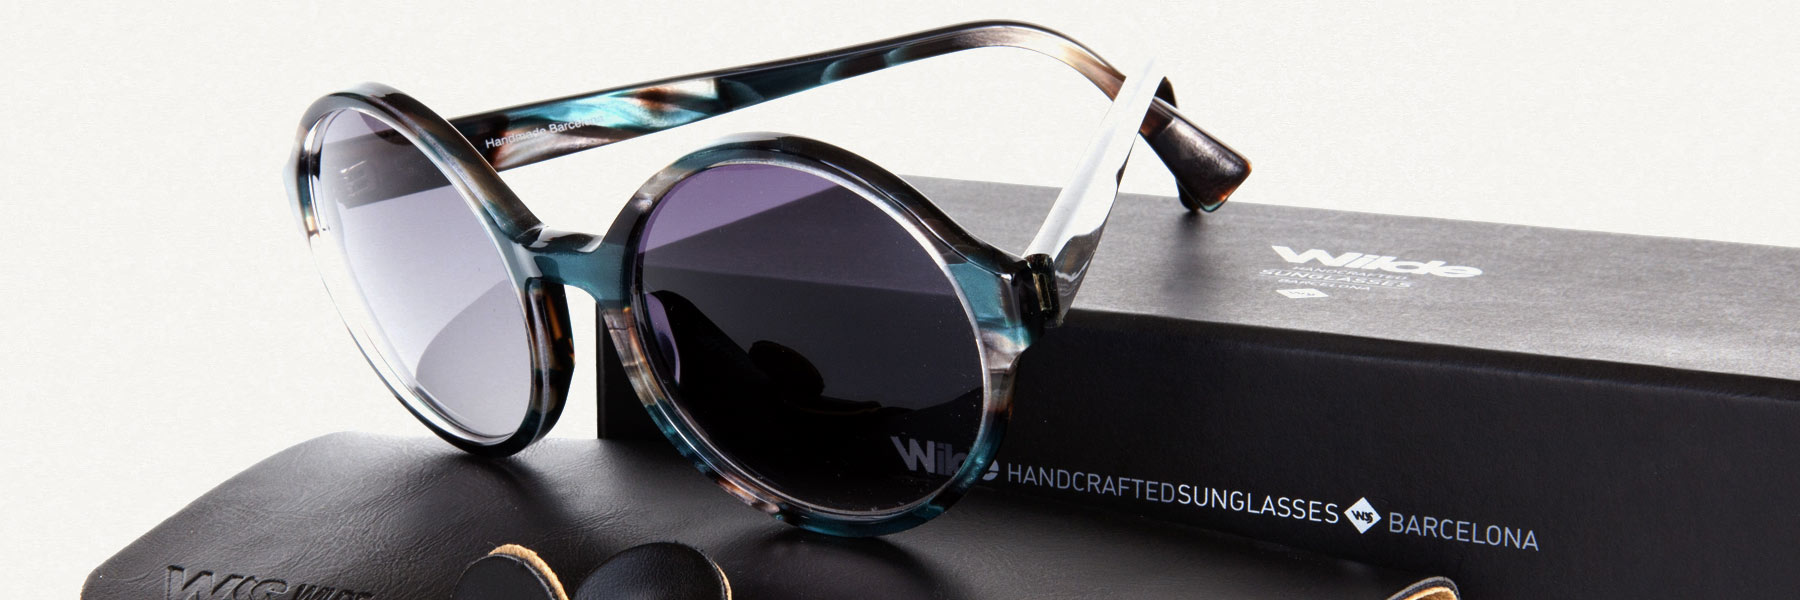 Wilde_Sunglasses_round_Handcrafted_barcelona_Madrid_Best_on-line_store_brand_5.jpg